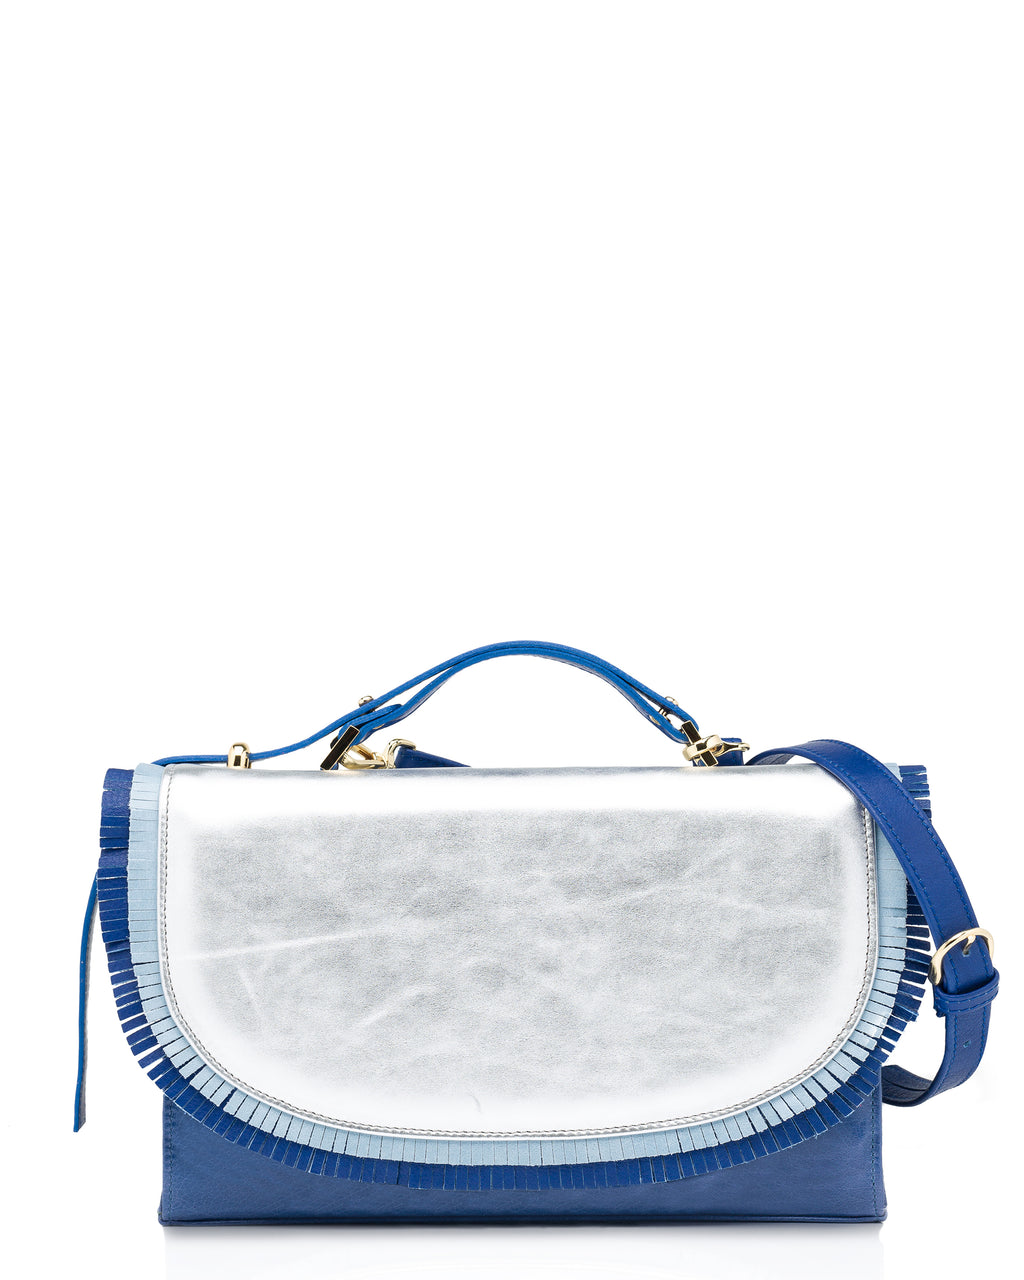 MANJERICA GARDENIA BLUE SEA Crossbody Bag or Clutch Bag (detachable strap, it can be used both ways)